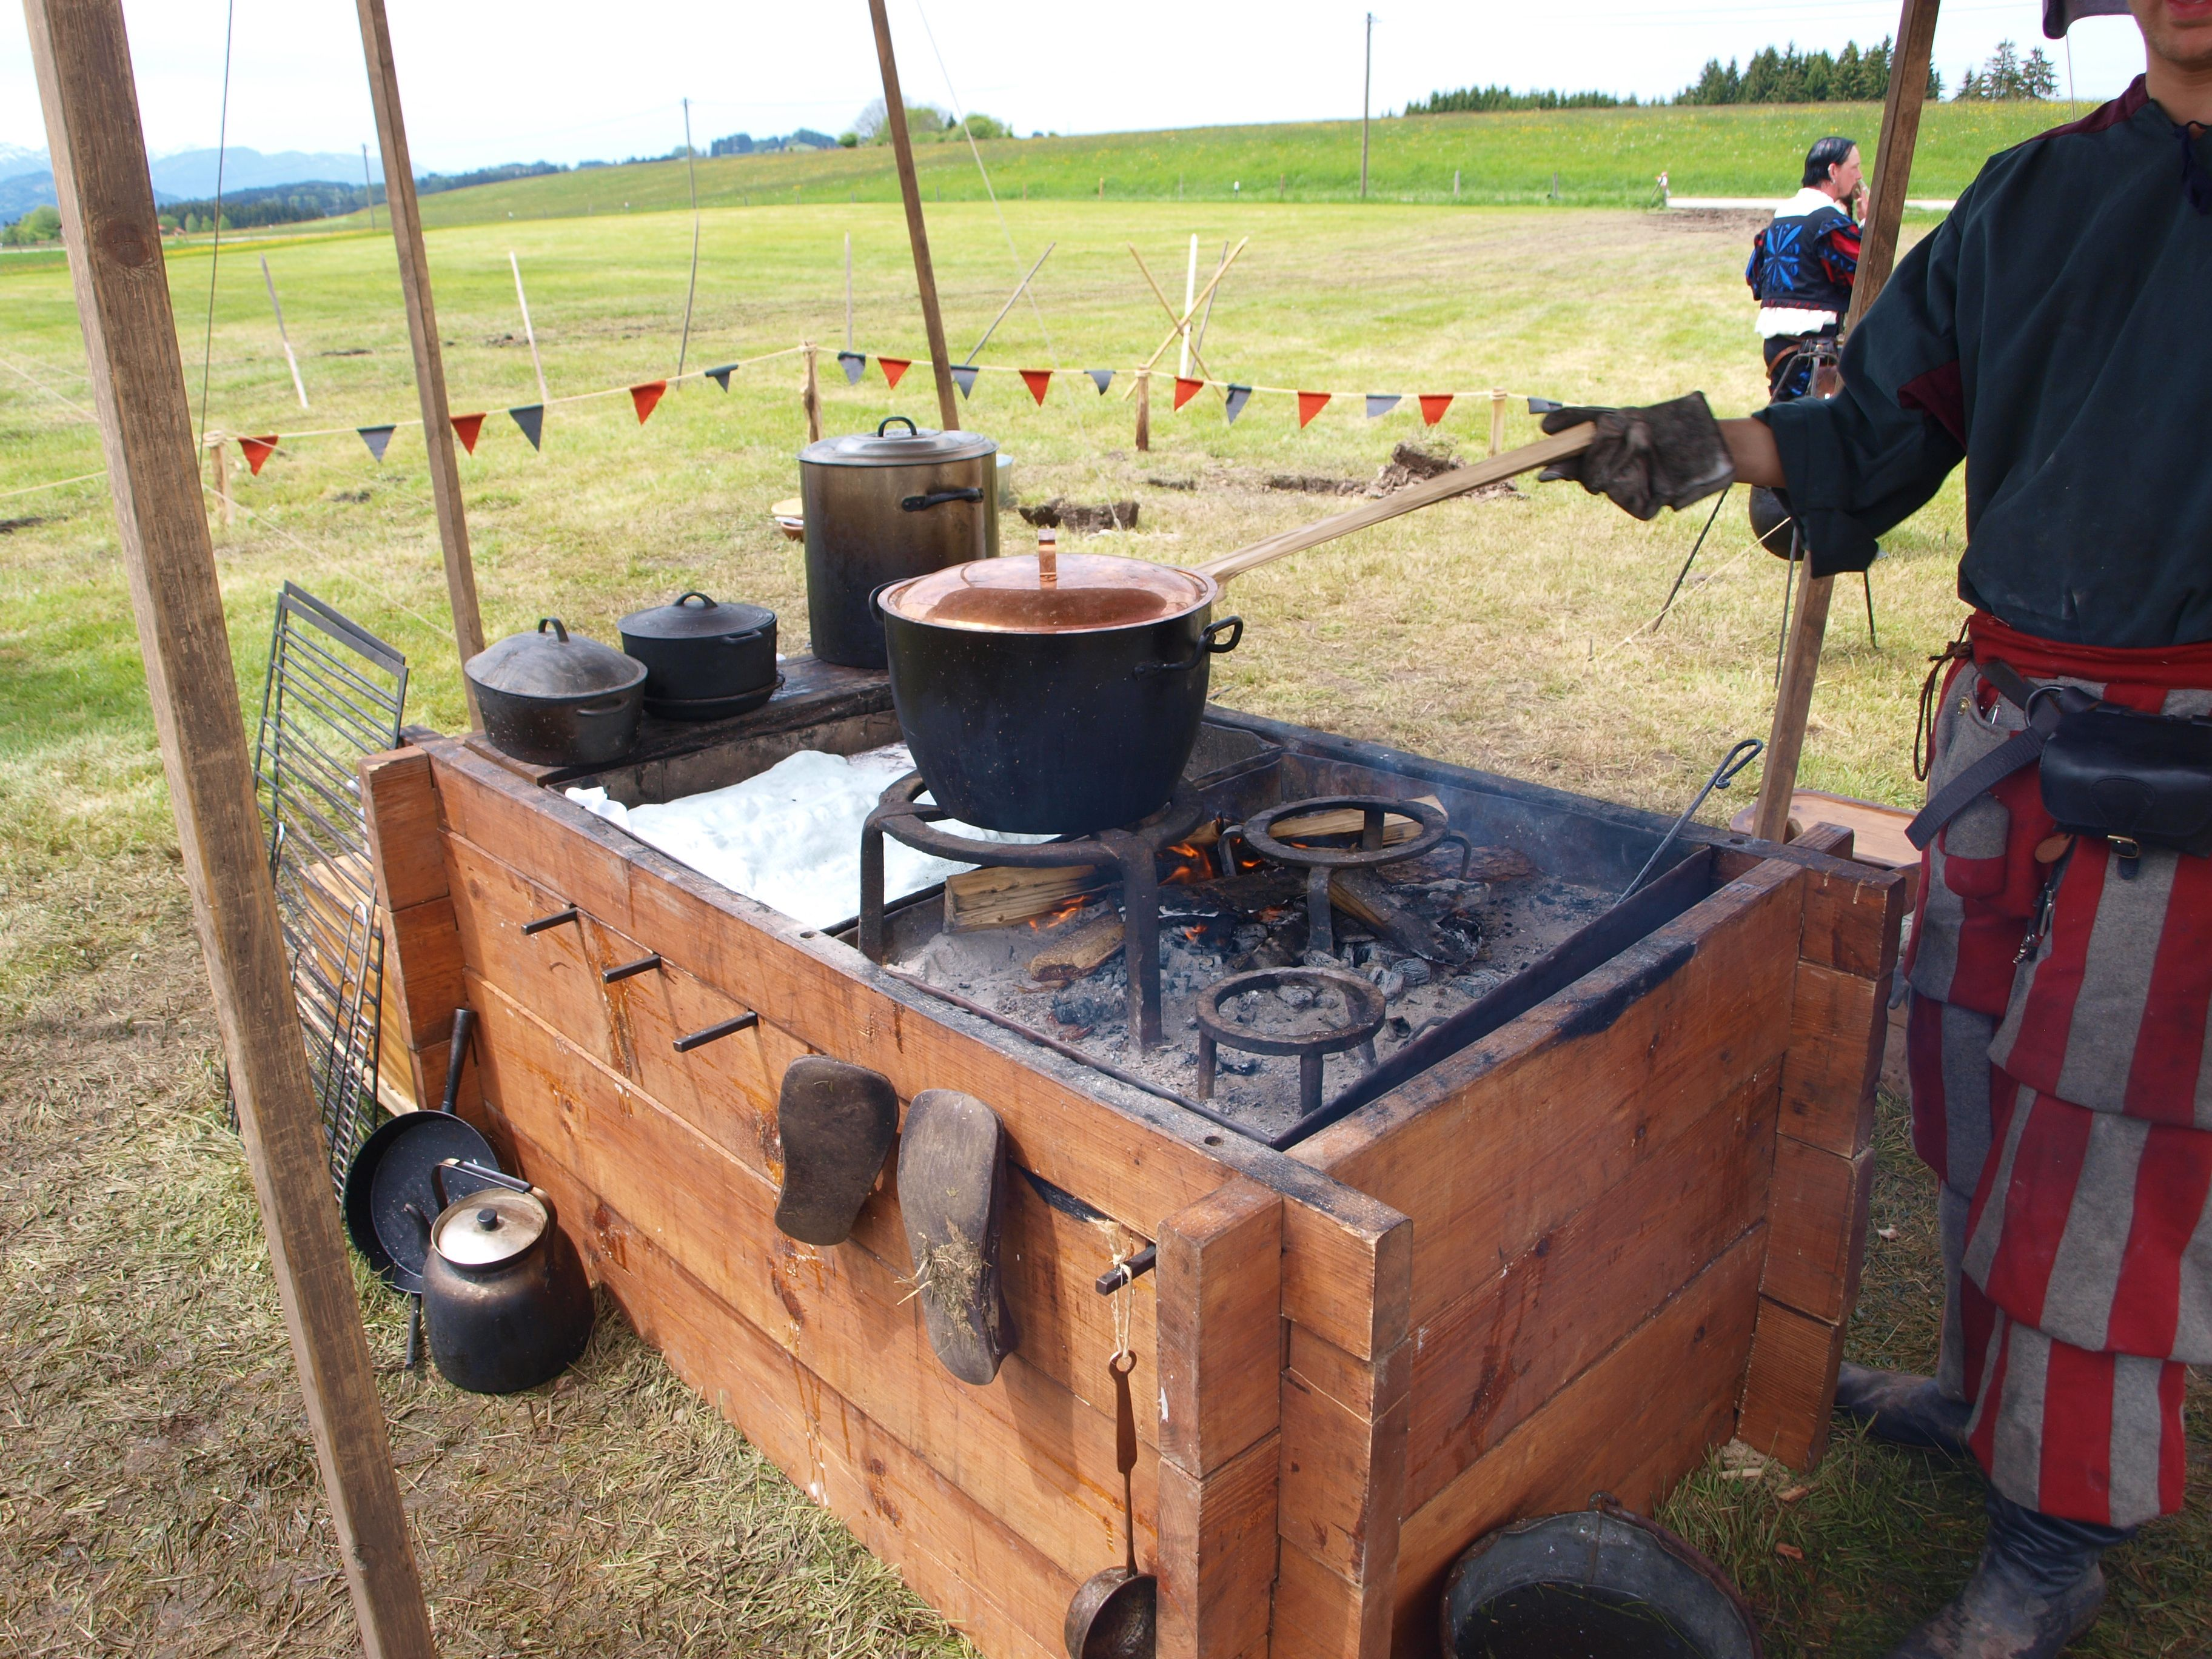 Old Tinned Copper Cookware In 2019 Cooking Stove Dutch